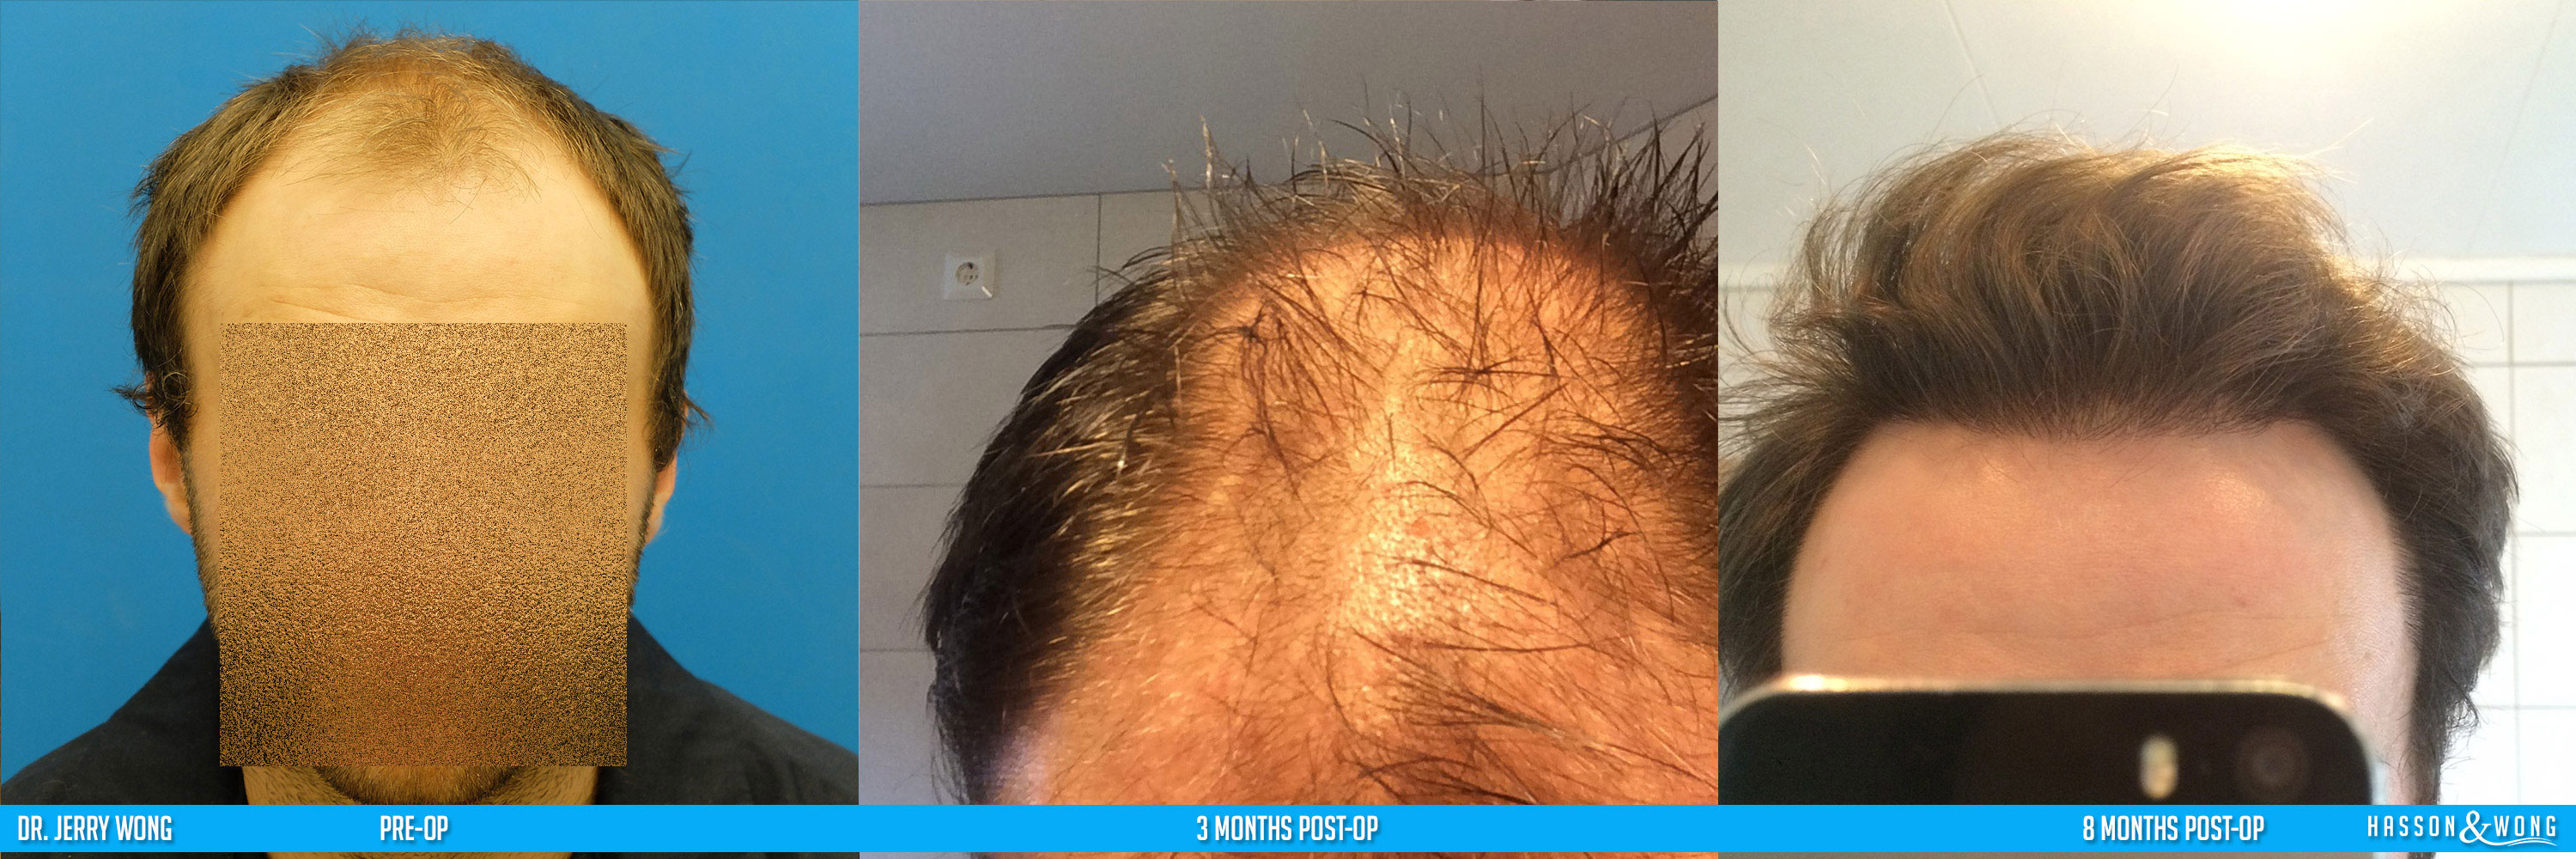 norway hair transplant patient main image